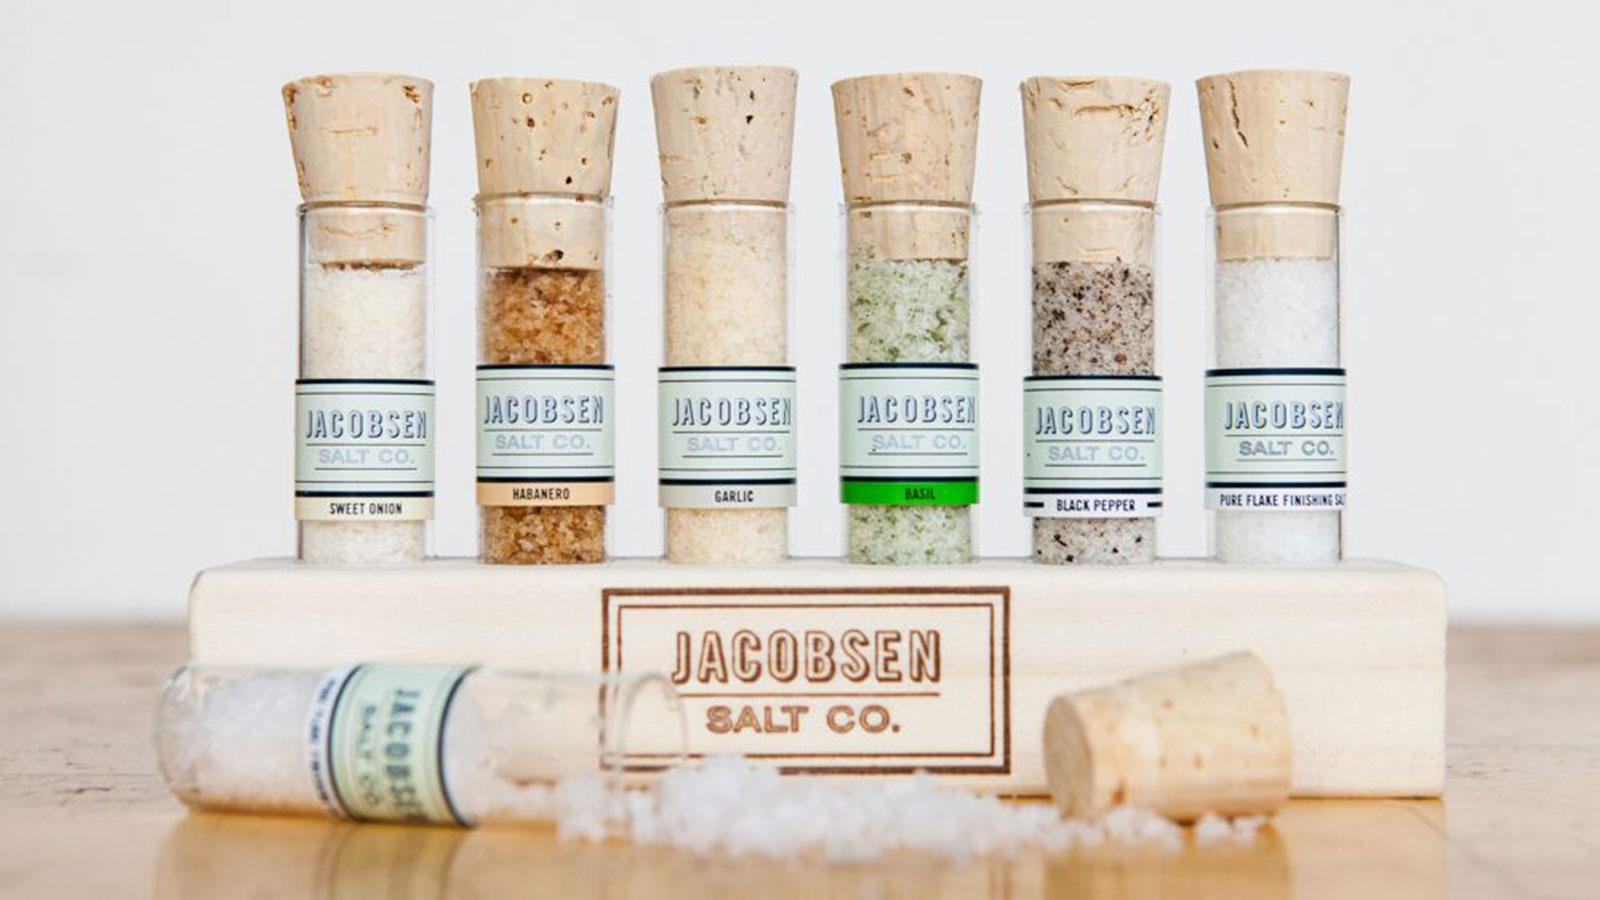 How Jacobsen's Salt Came to Be So Beloved by Chefs